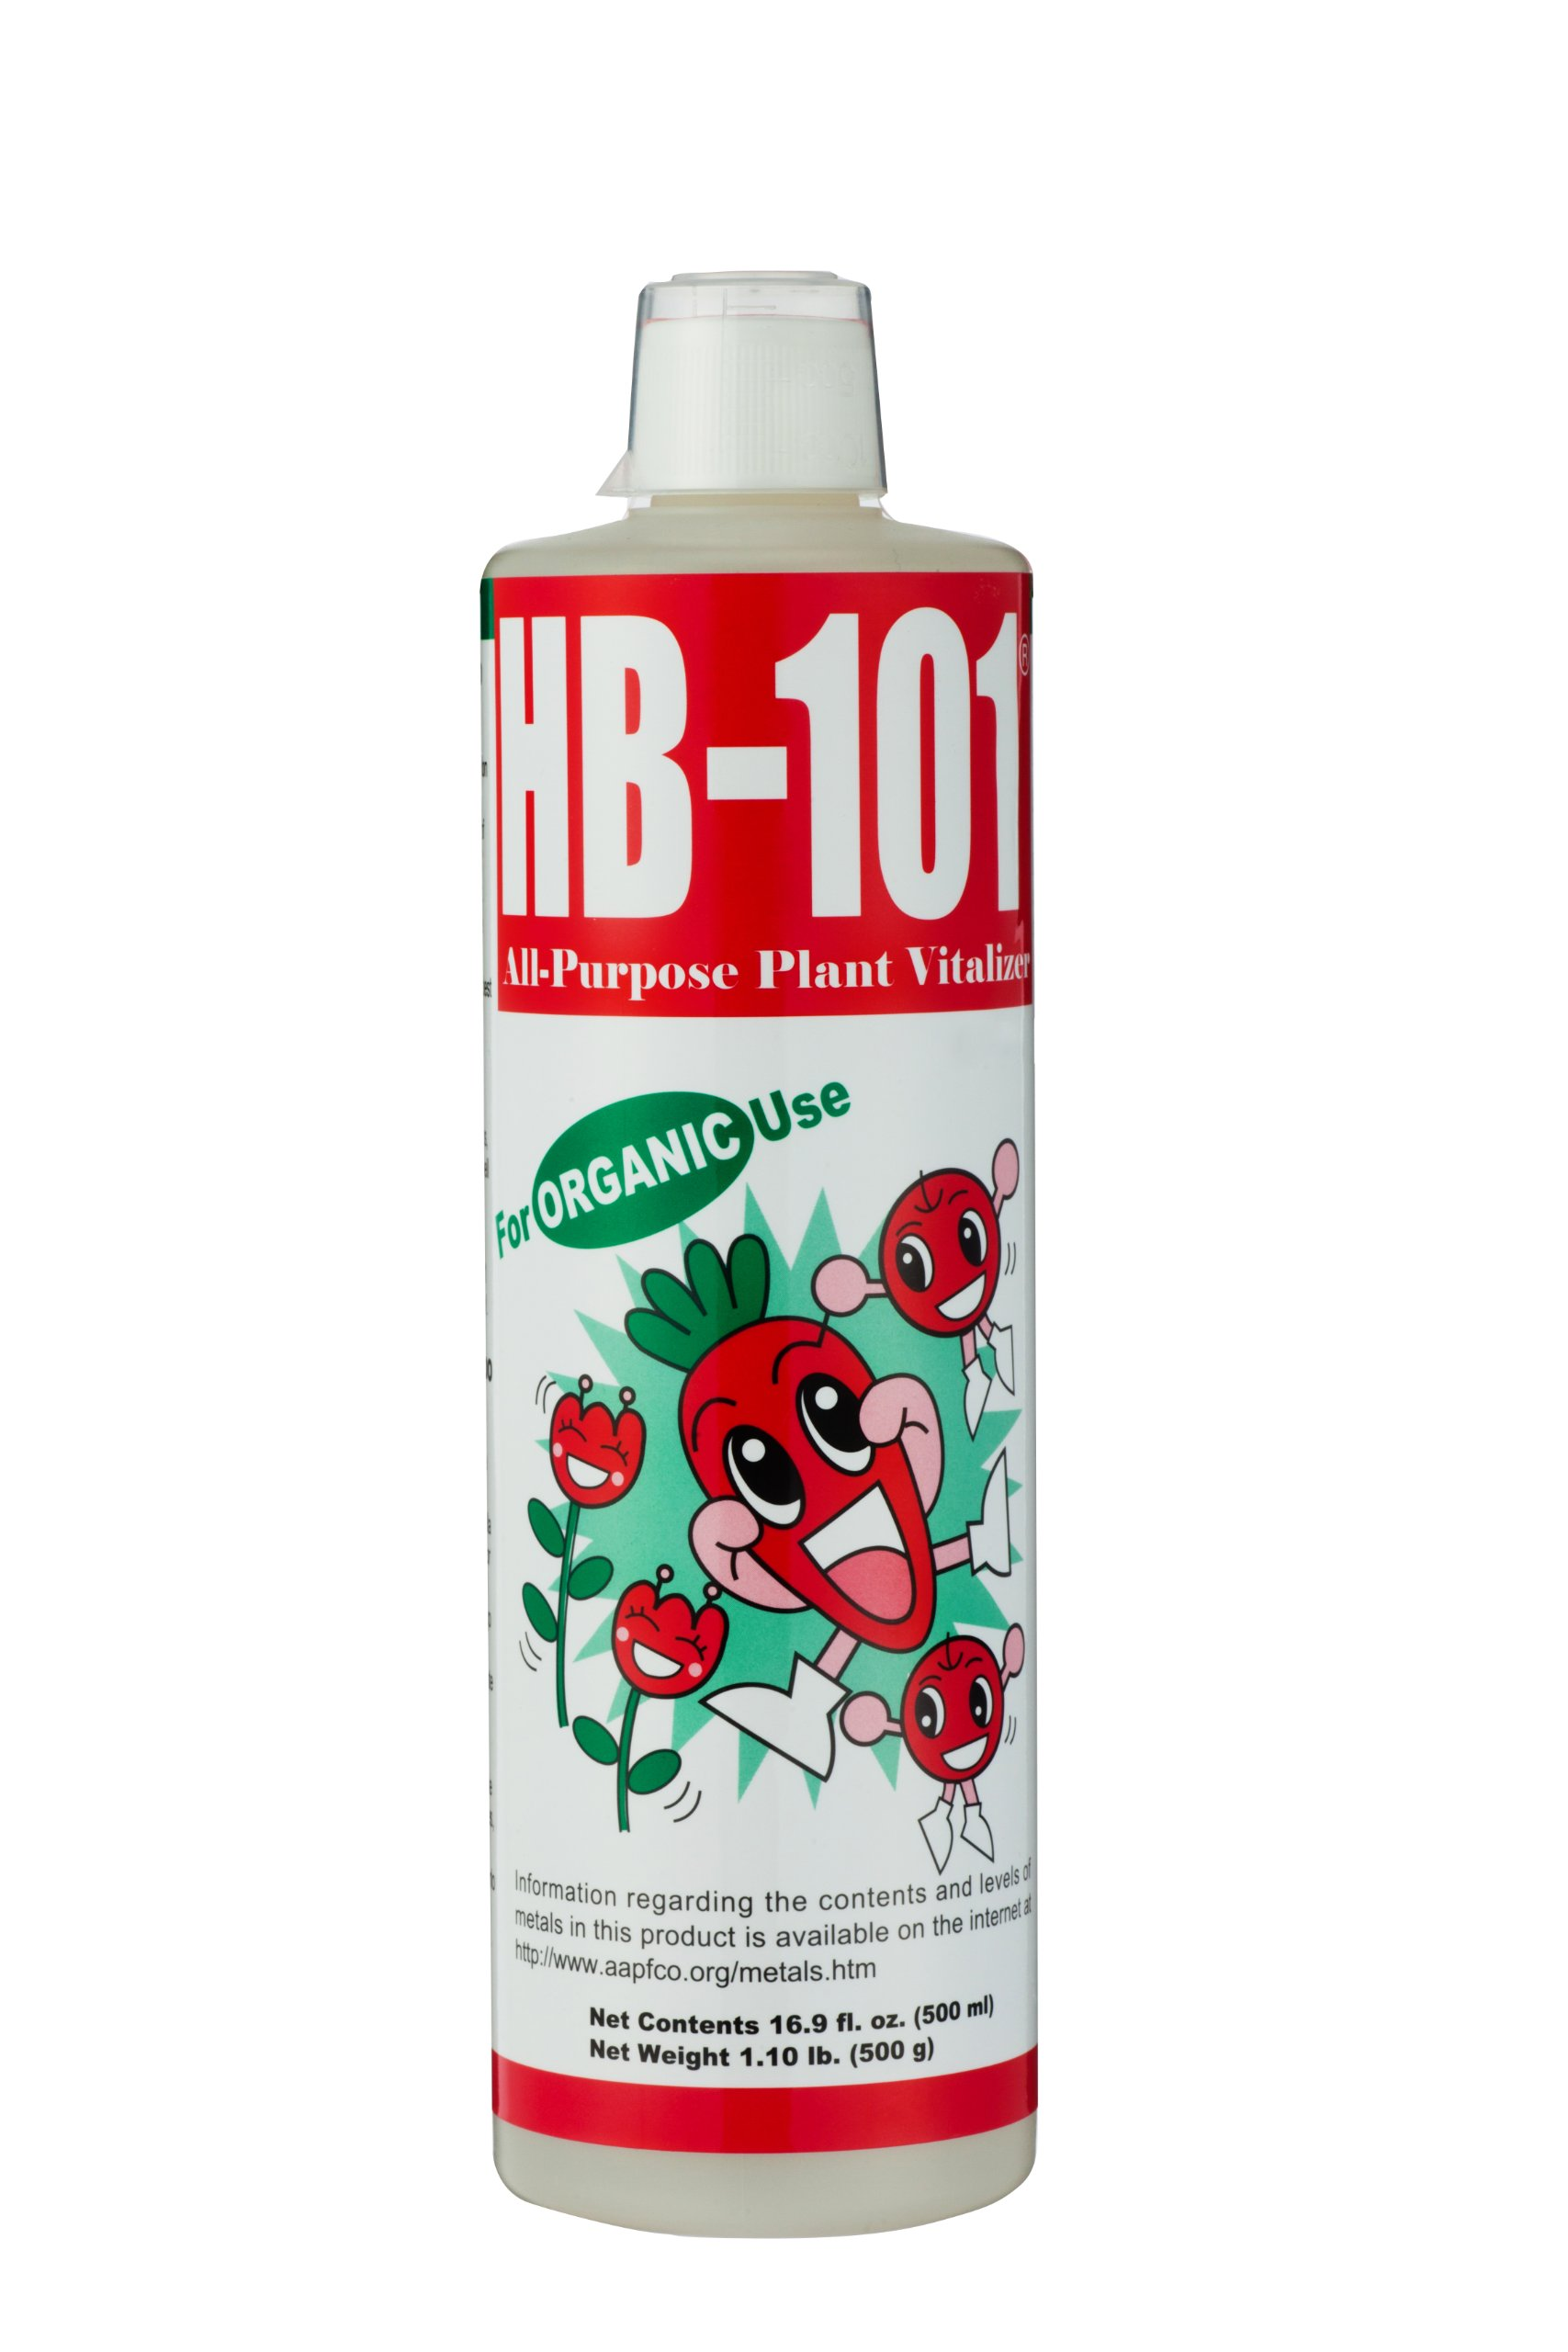 HB-101 All Purpose Plant Vitalizer, 16.9 Fluid Ounce